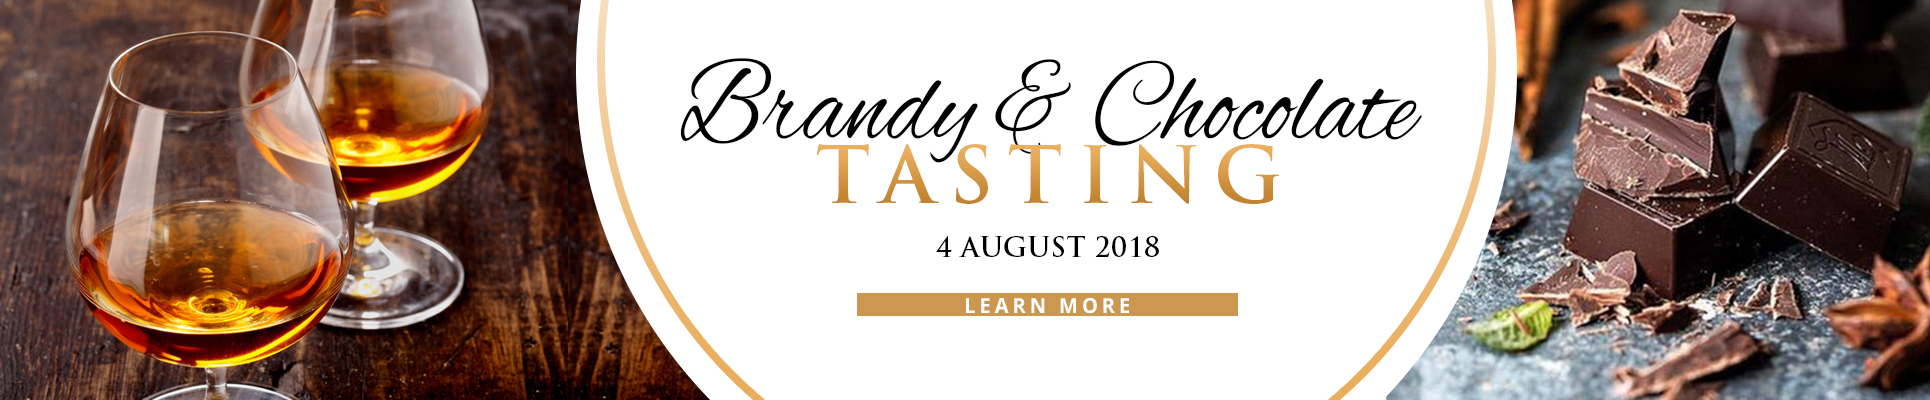 BRANDY PAIRED WITH CHOCOLATE INCLUDING A 5 COURSE MEAL AT MISTY HILLS COUNTRY HOTEL MULDERSDRIFT